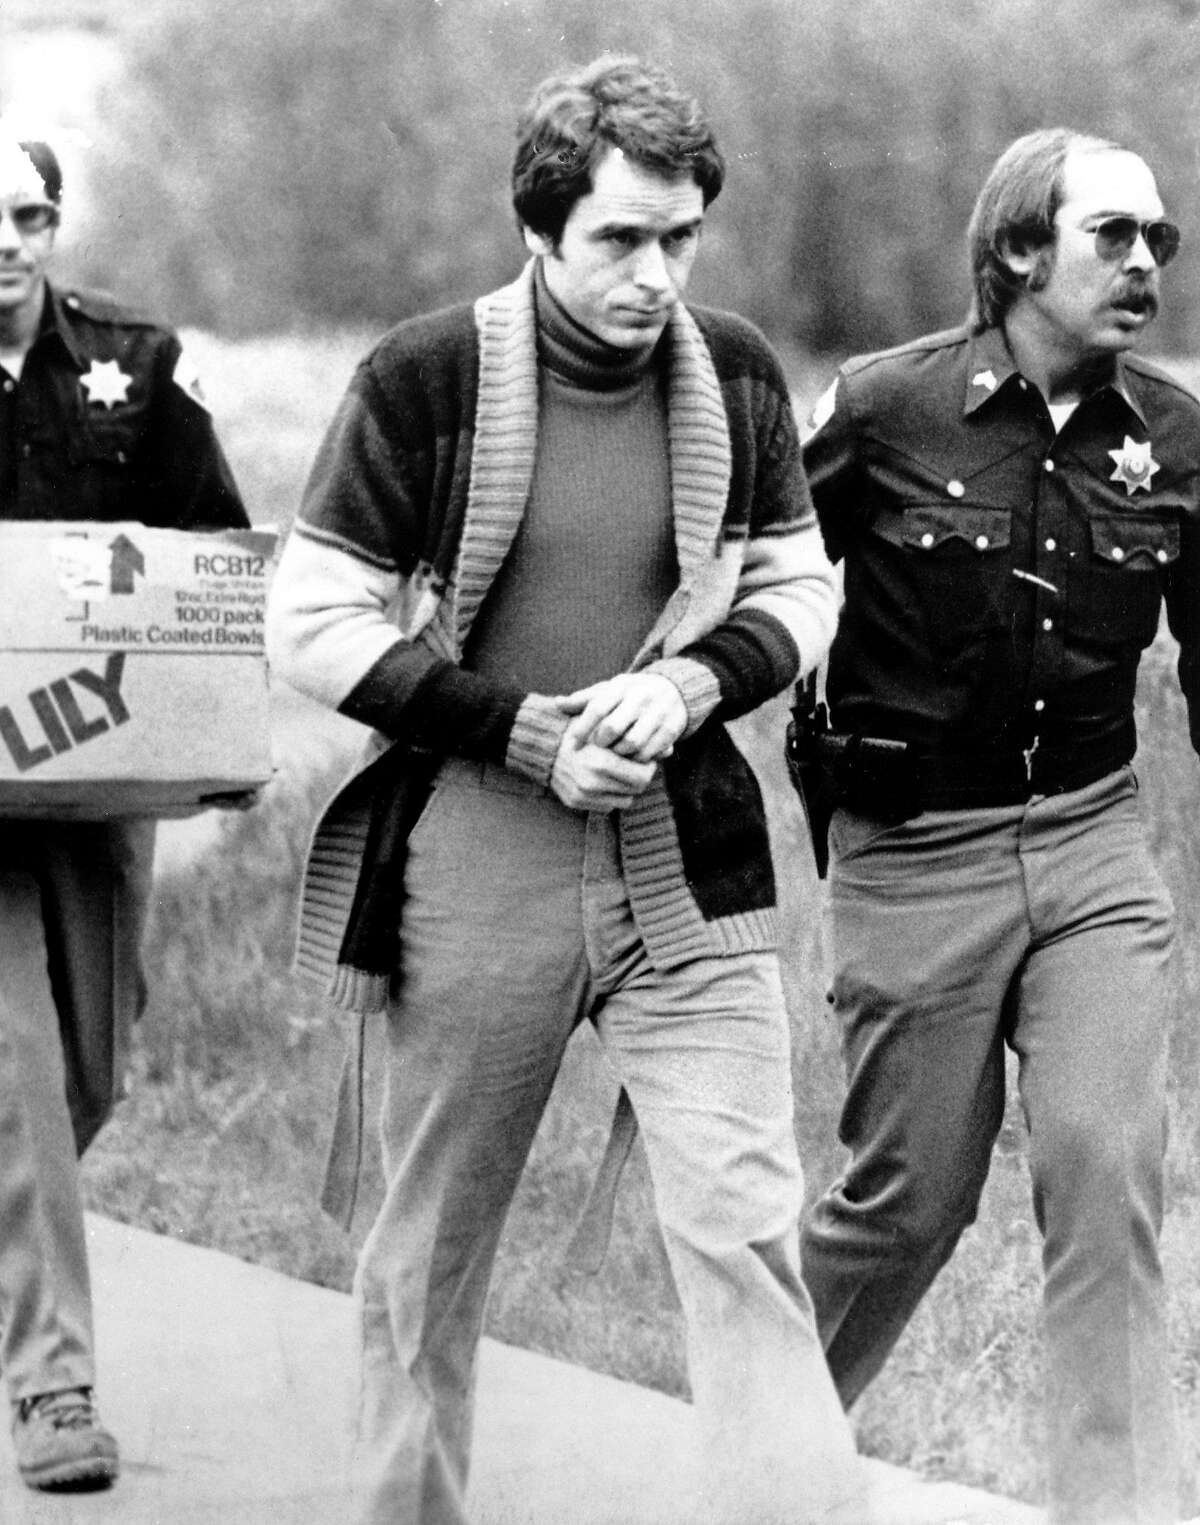 Convicted kidnapper Theodore Bundy is led into the Pitkin County courthouse by Deputy Peter Murphy, left, and Rick Kralicek for a hearing in Aspen, Colo., on June 8, 1977. Bundy, who was being charged for murder, jumped out of a second-story window during a court recess. (AP Photo/Mark Levy)